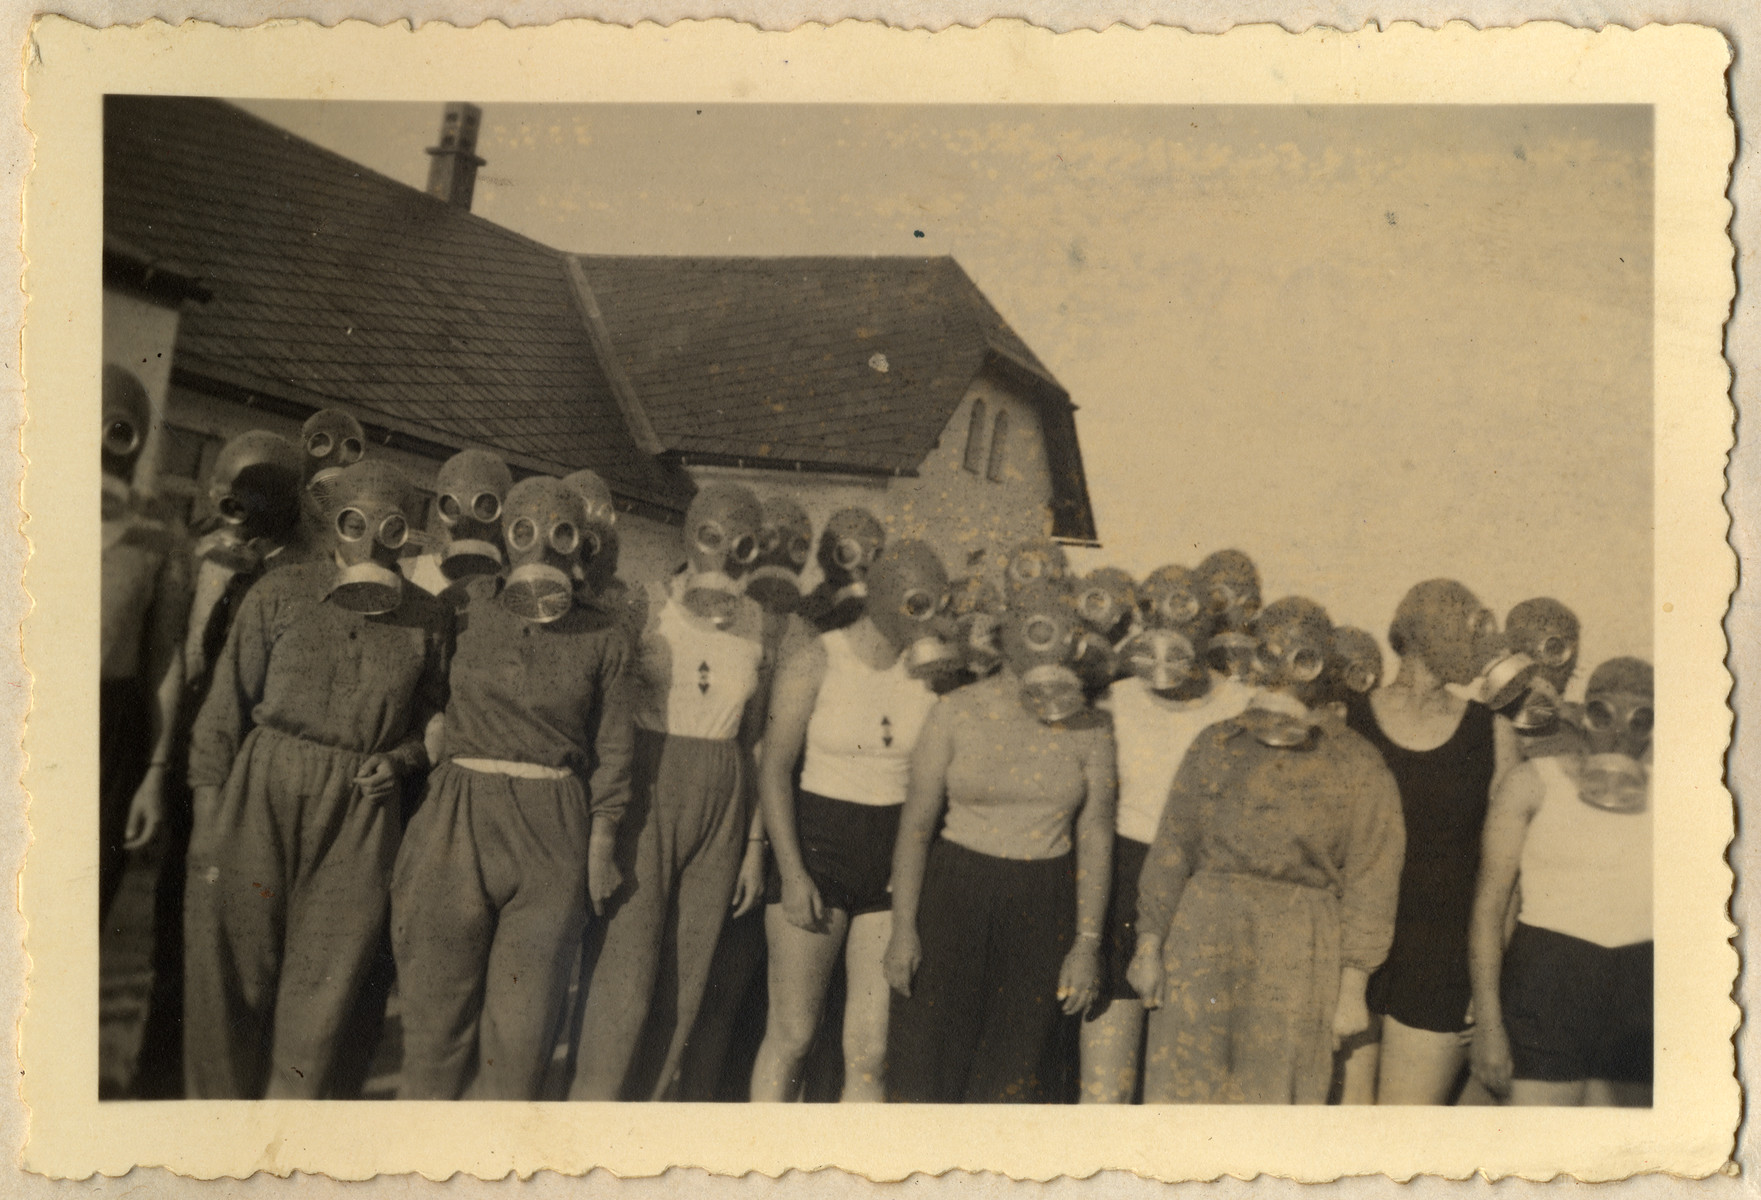 Young German women in the Reich Labor Service are photographed wearing gasmasks during an air raid drill (some wear BdM shirts).